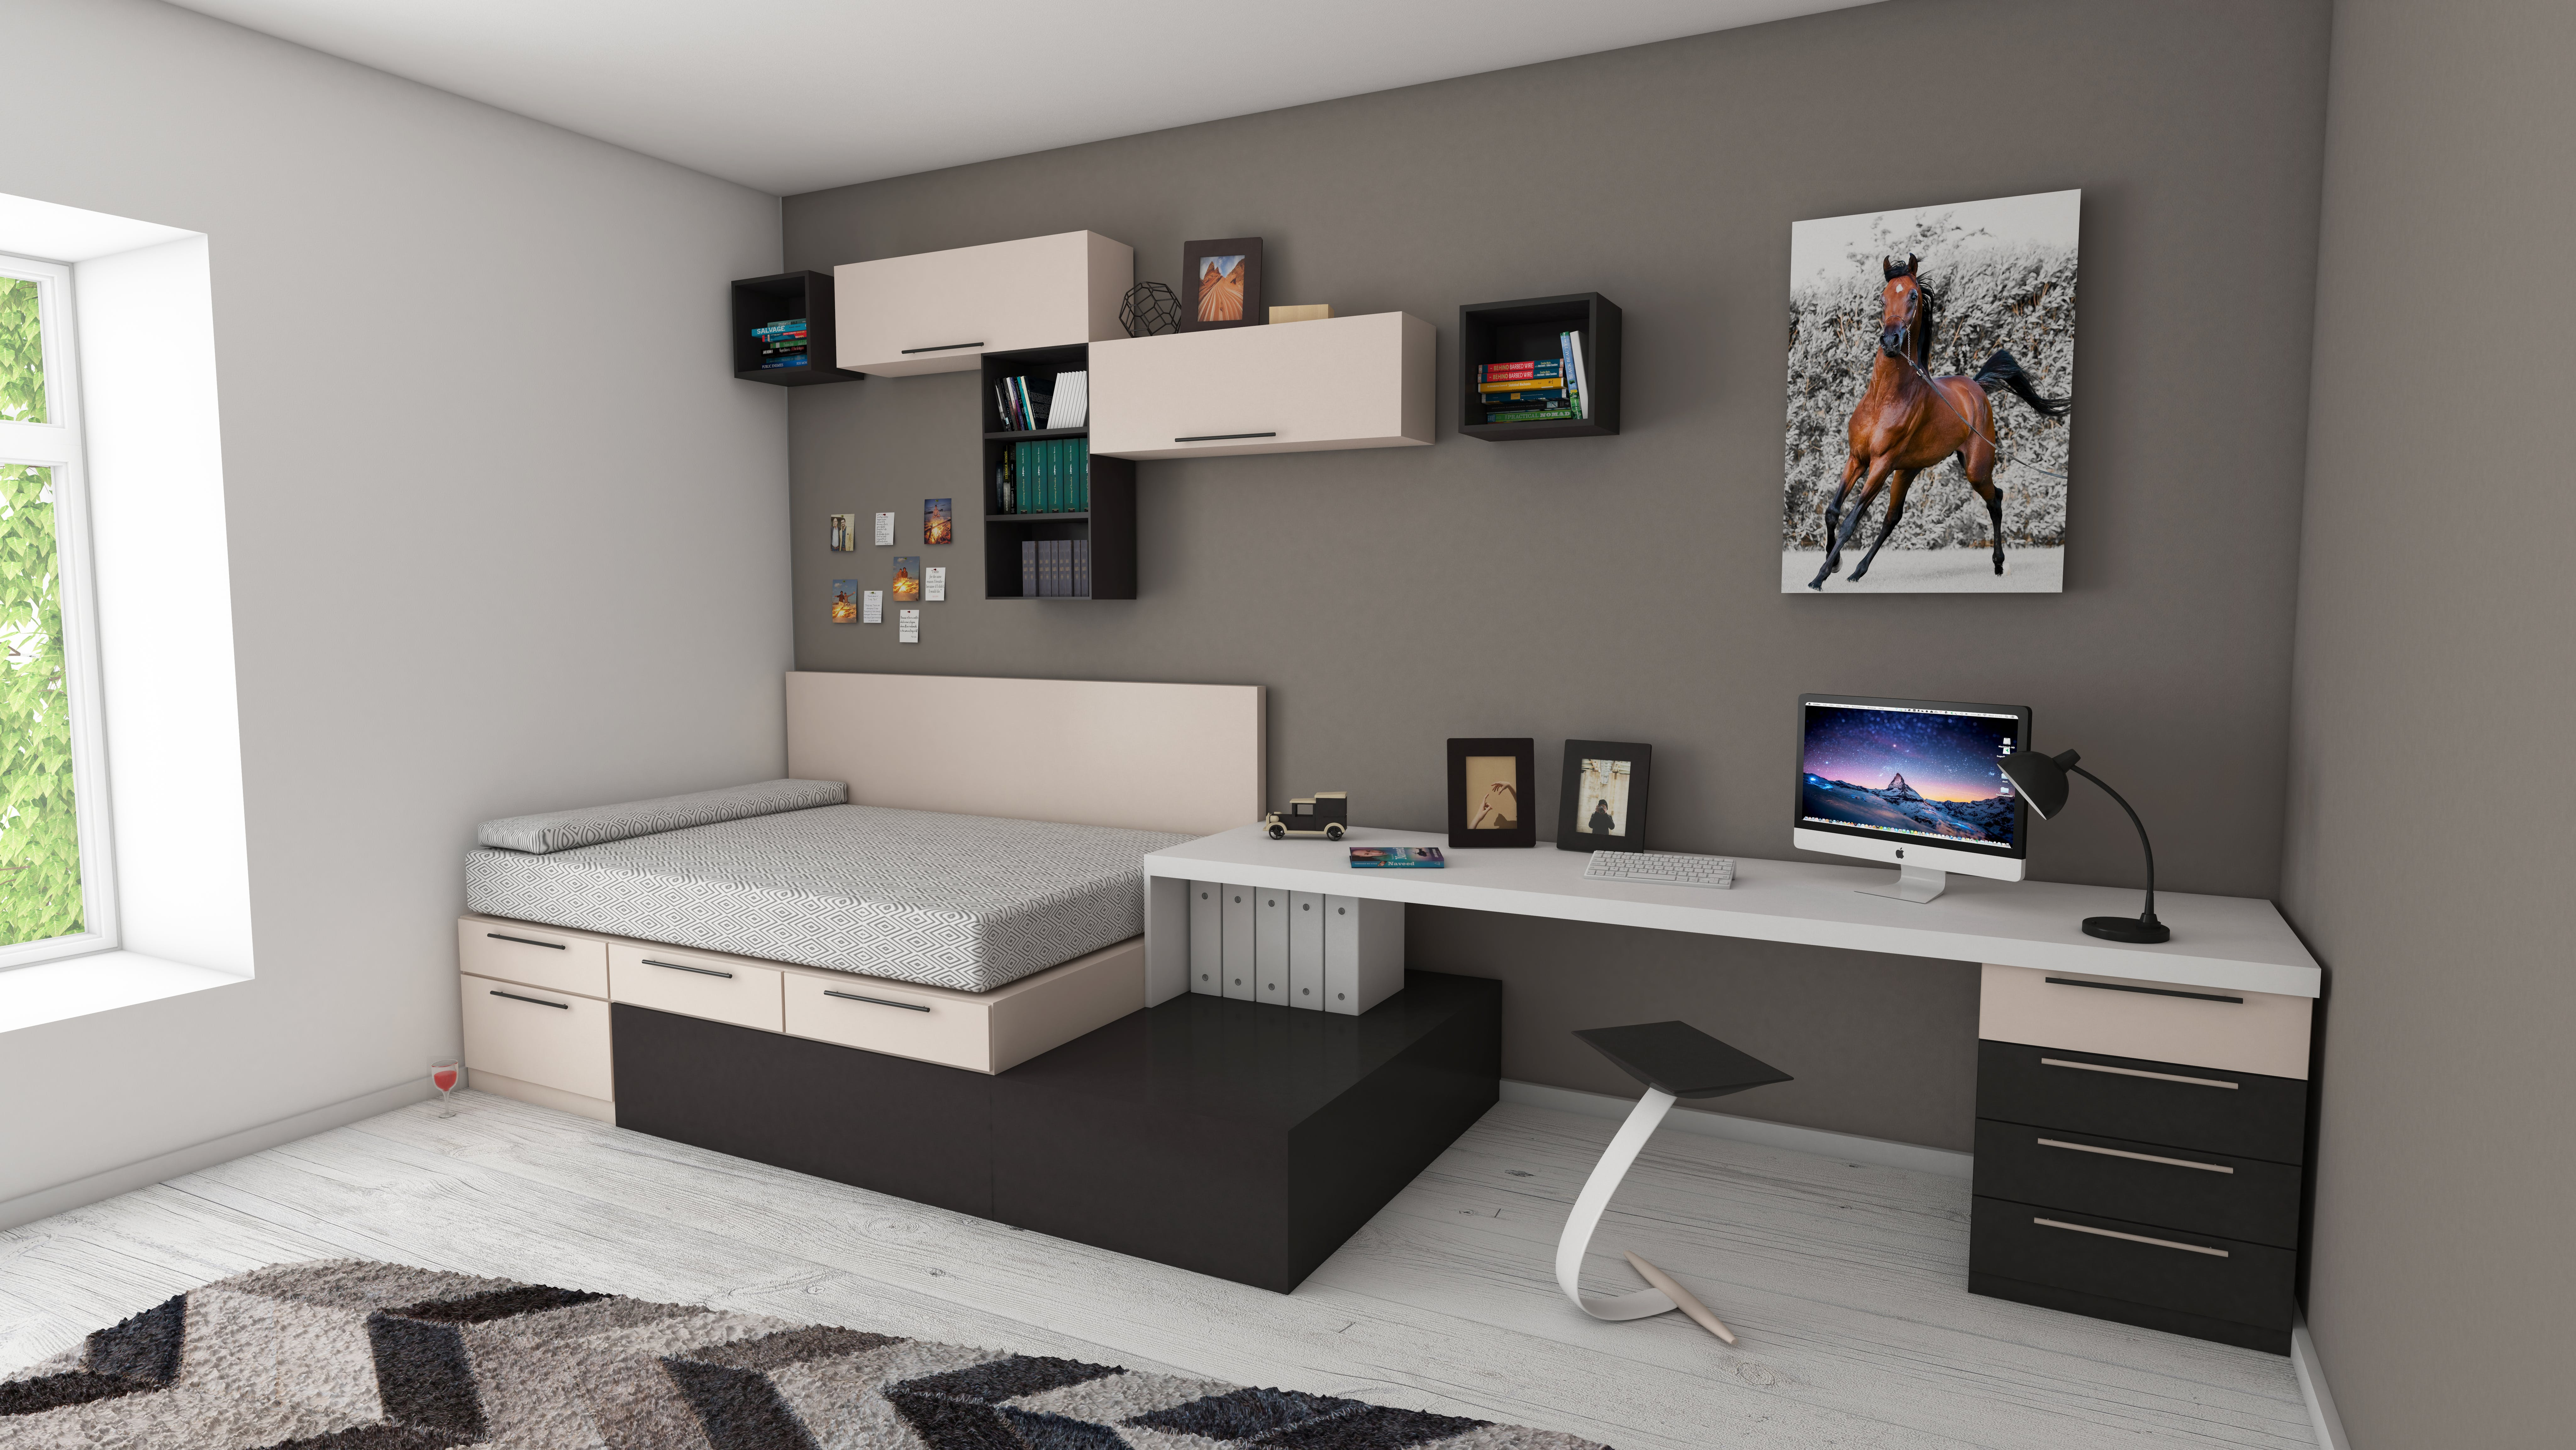 apartment, bed, bedroom